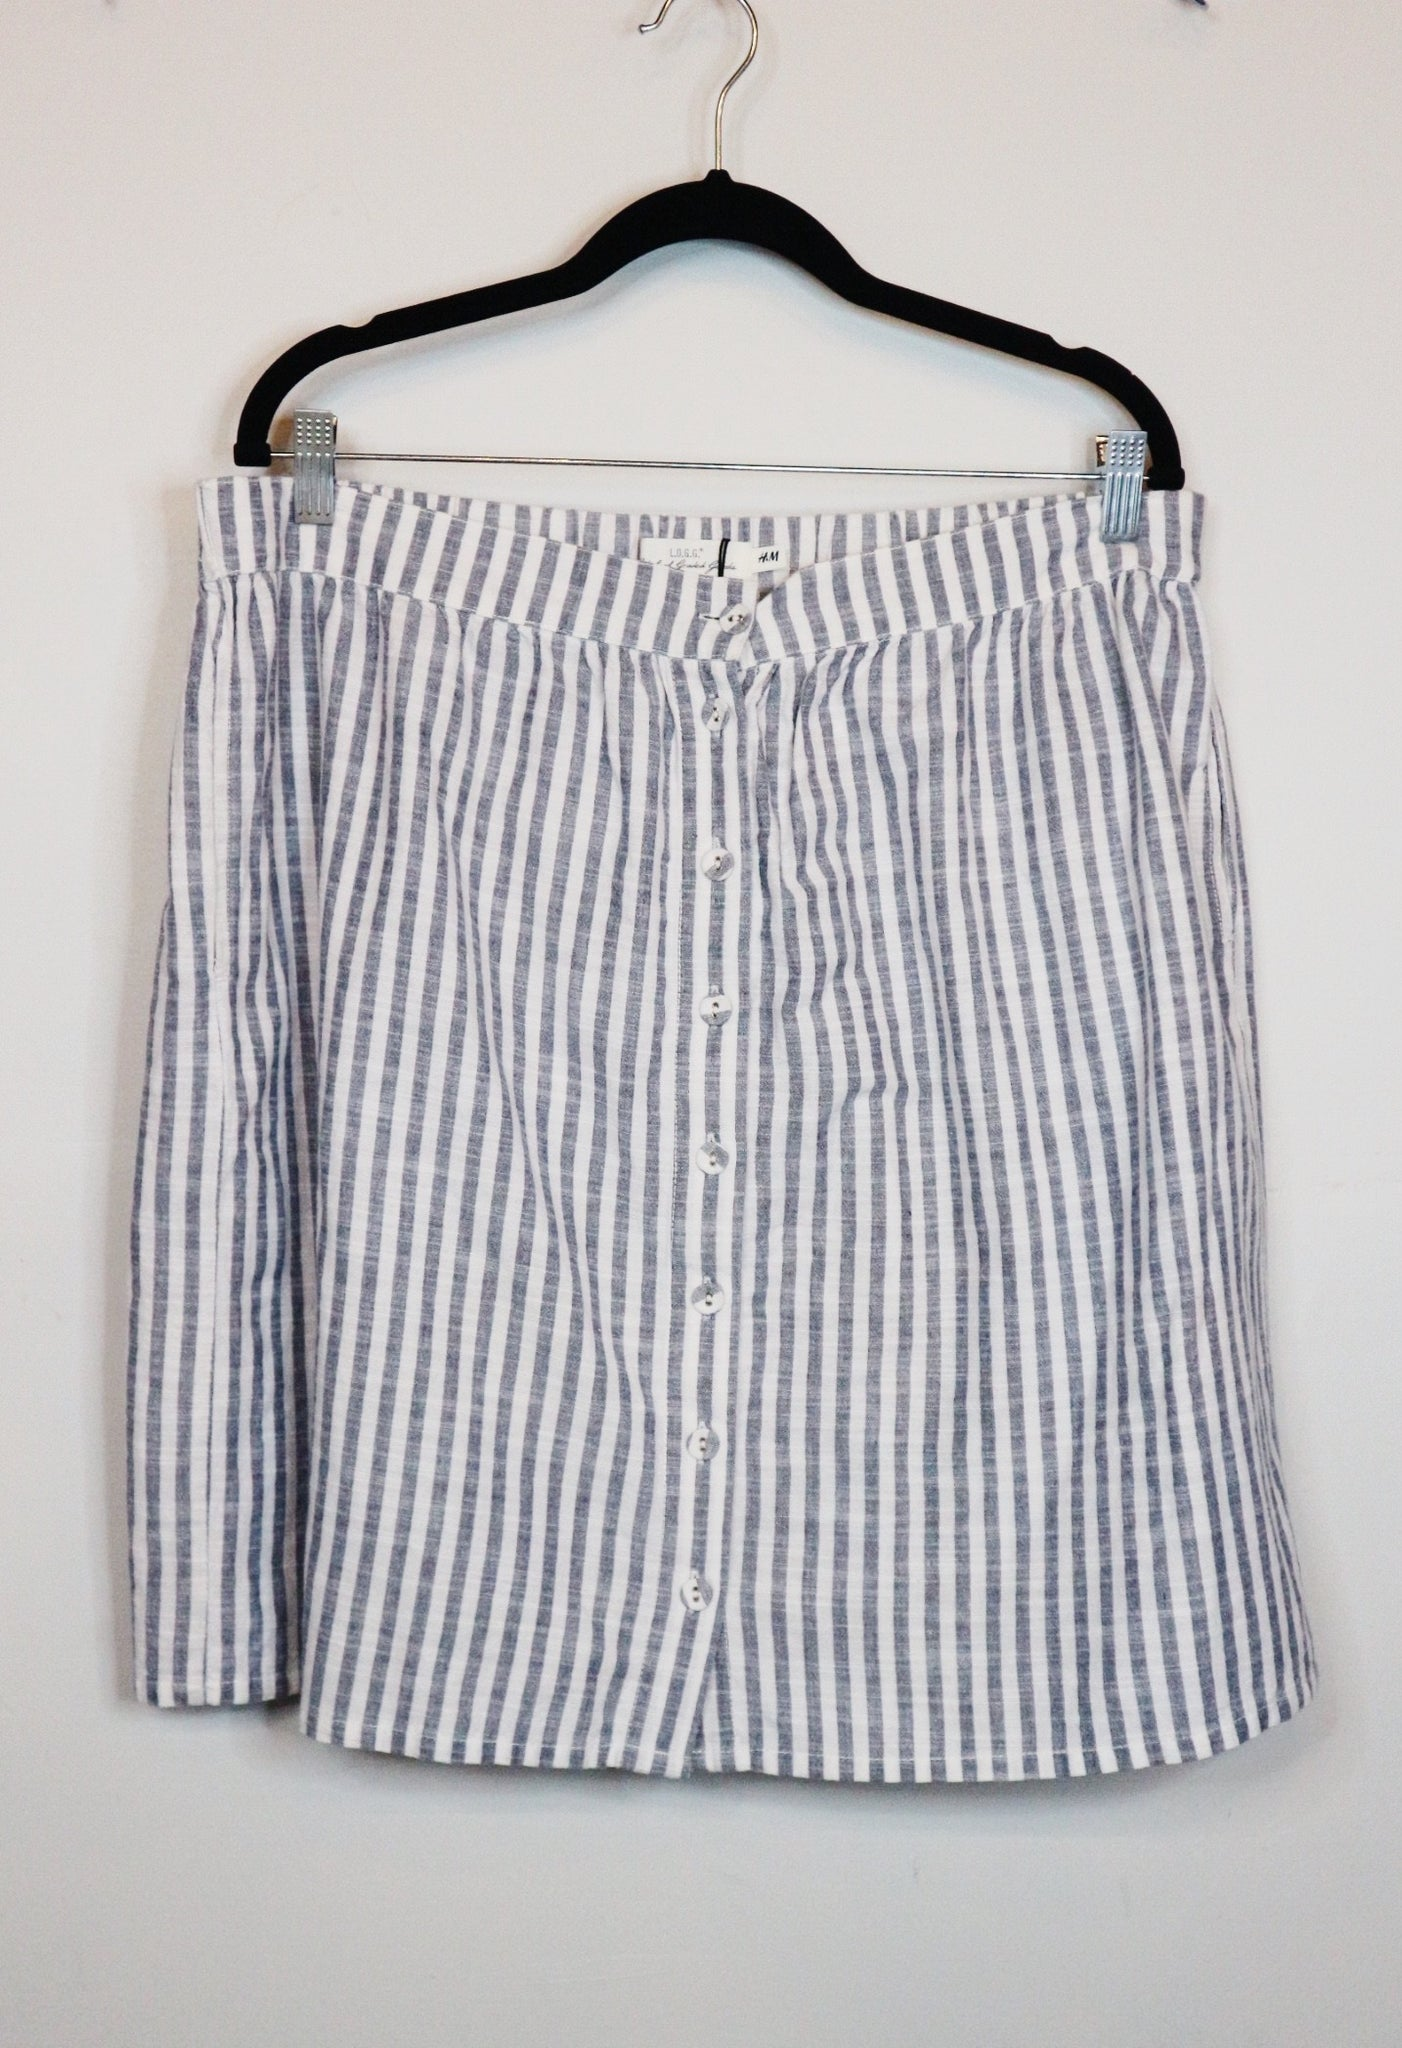 H&M white and black stripes buttoned skirt